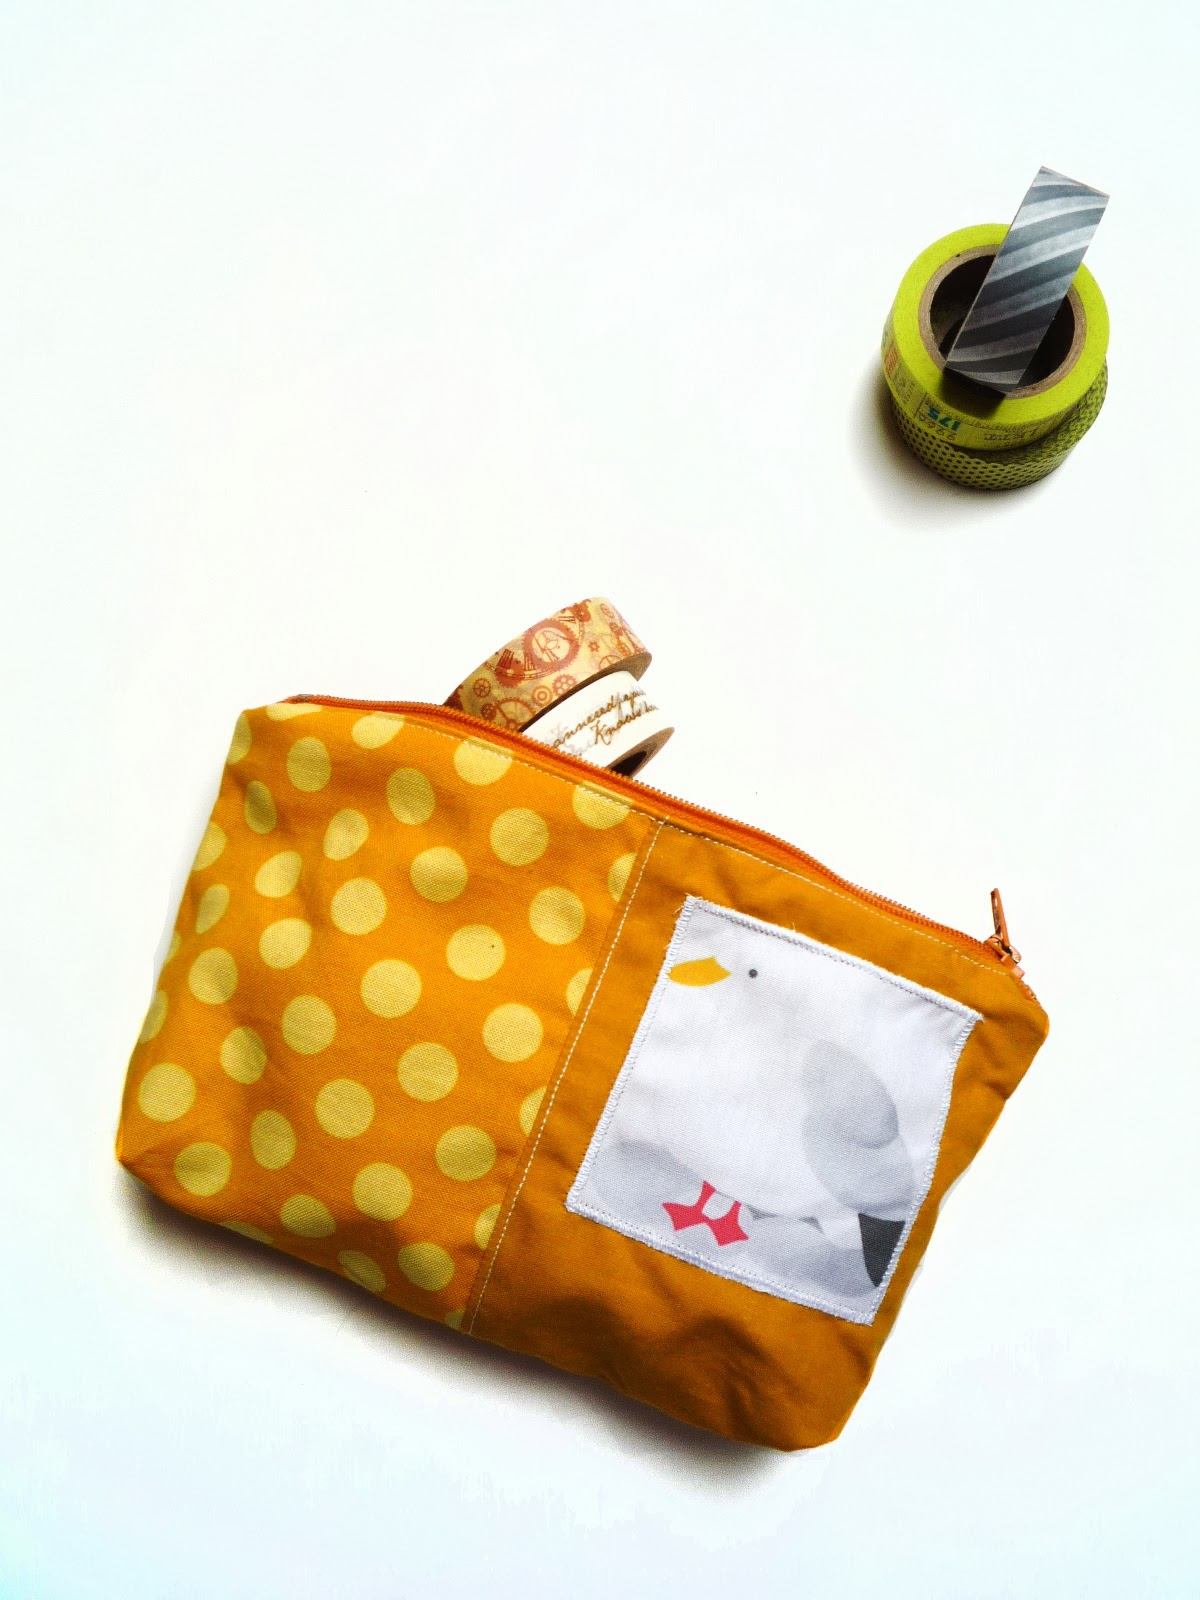 http://www.claralily.fr/catalogsearch/result/?frontend=ovch18e5f2pa4rehb6idb95jp7&q=trousse